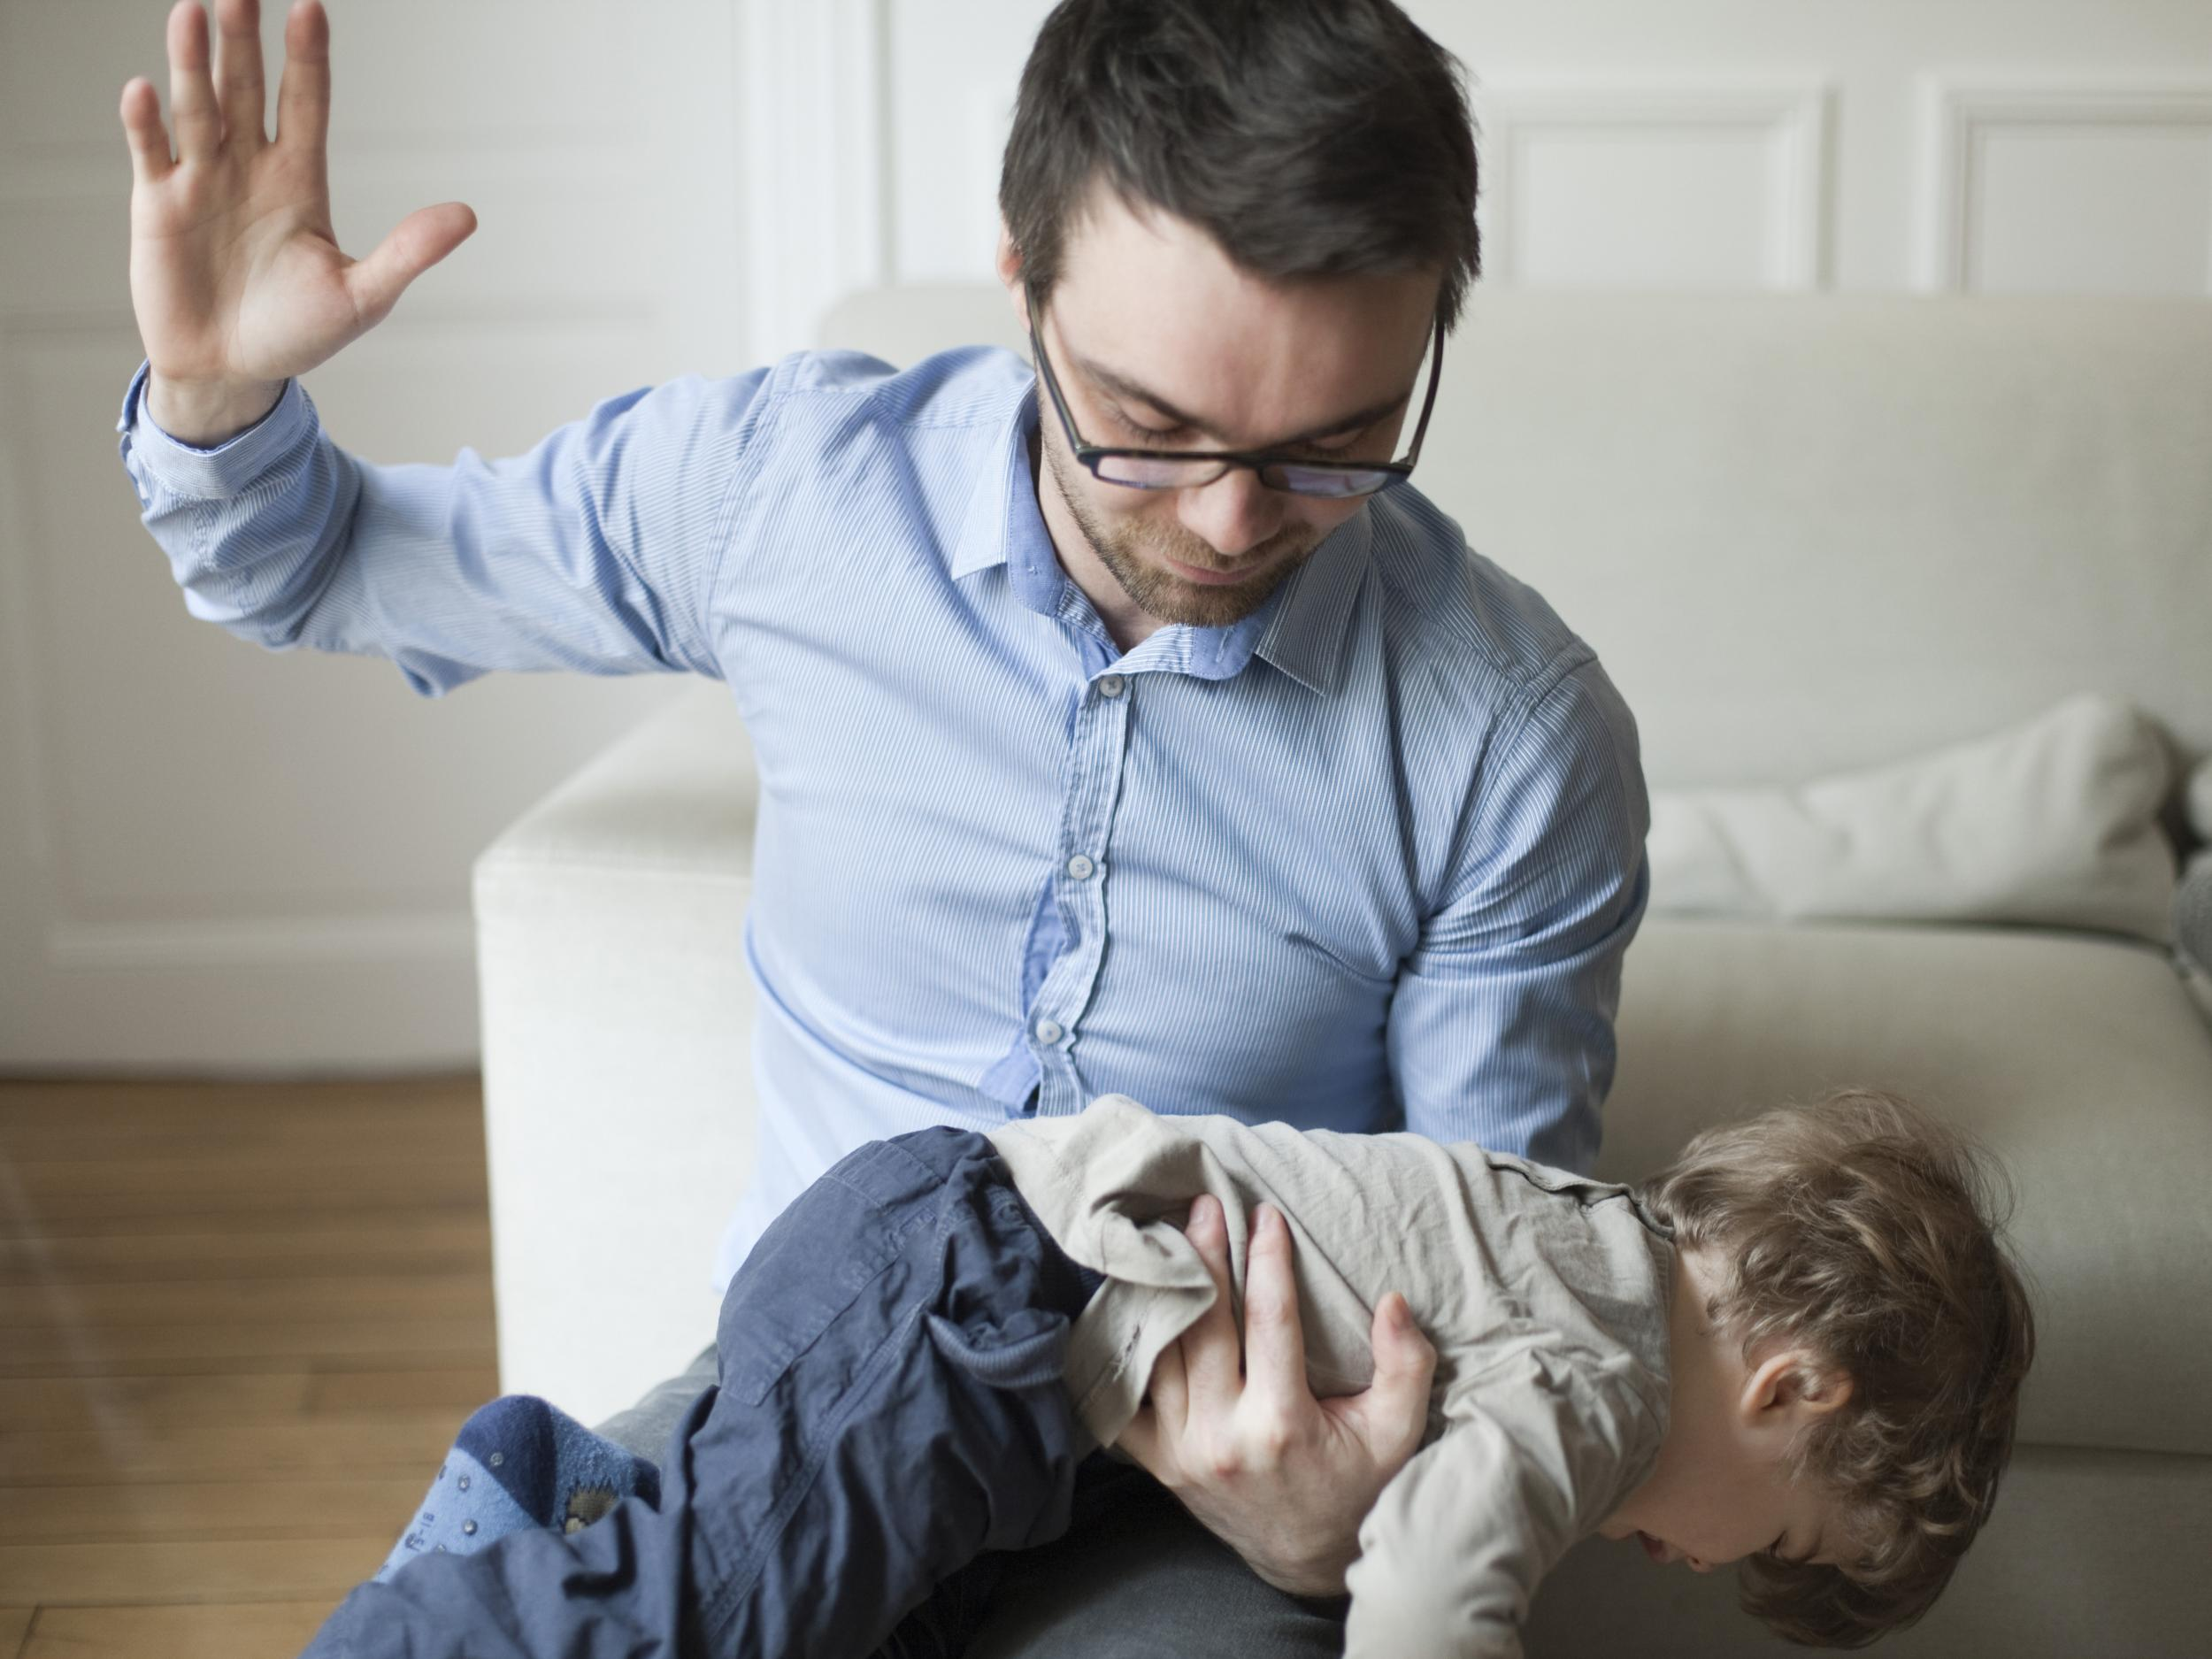 picture Doctors warn parents against spanking kids in new guidance